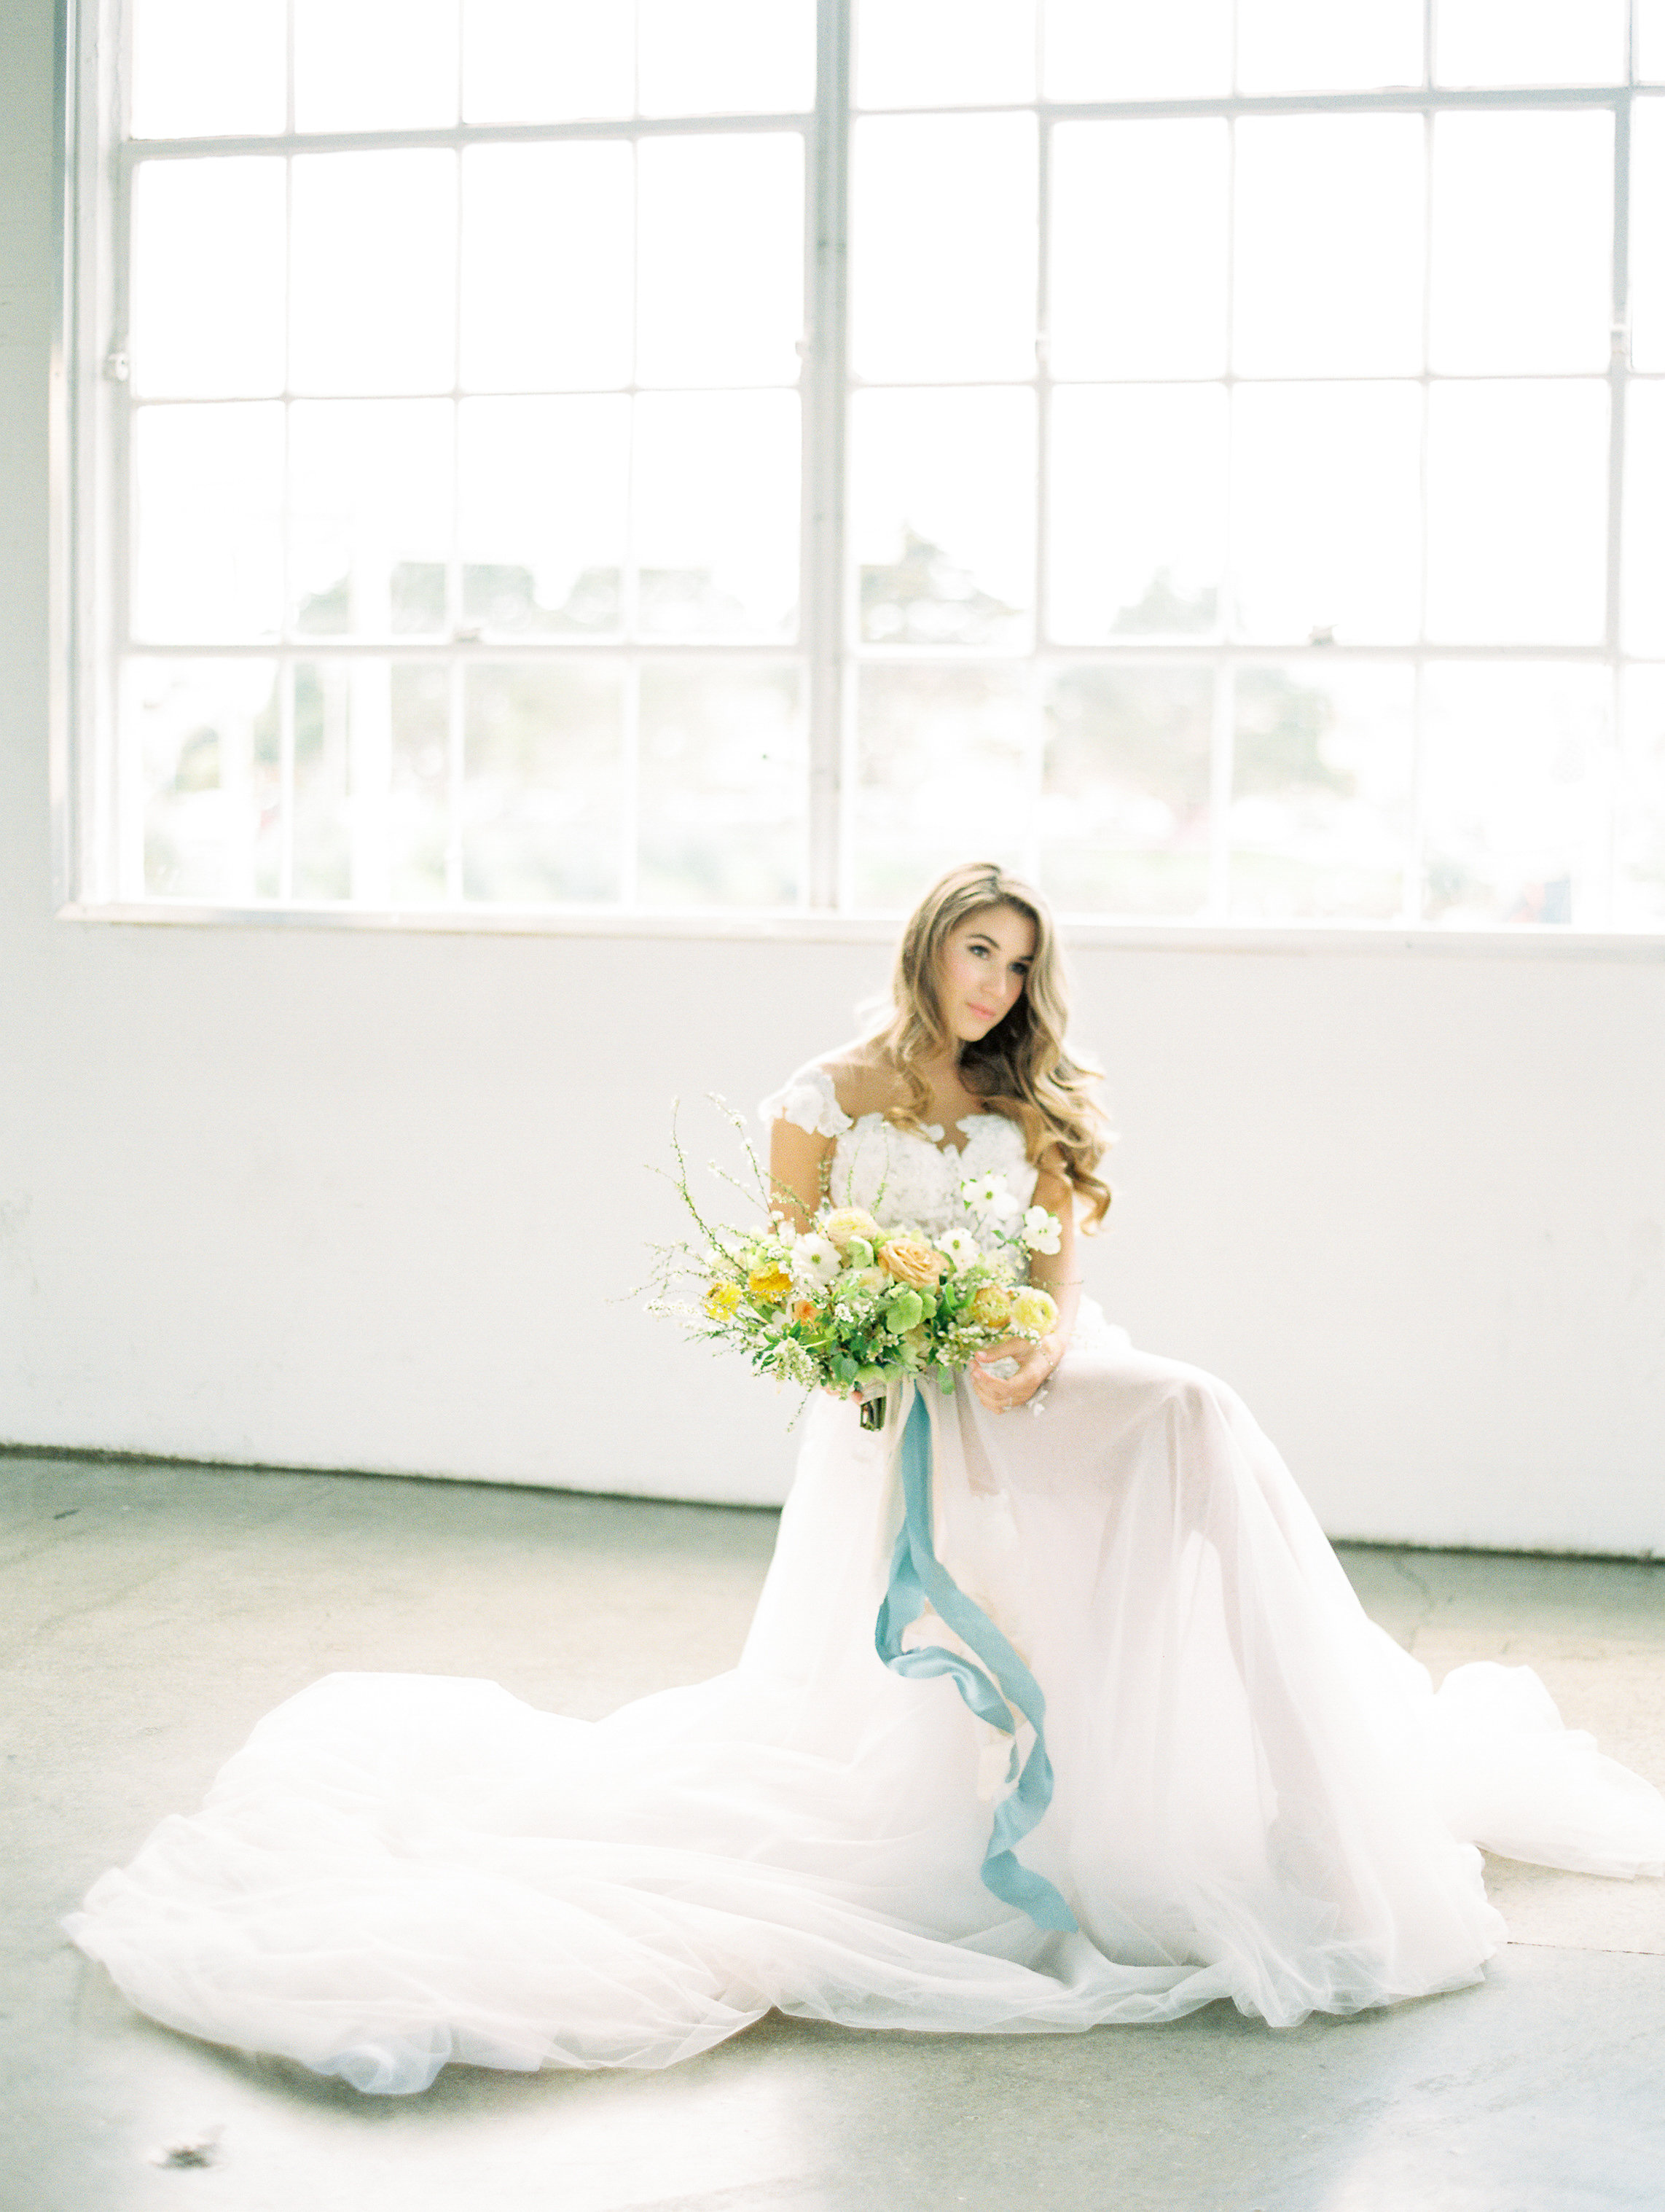 Beautiful and dreamy white wedding gown with fresh and lively bridal bouquet designed with long and flowy blue silk ribbons